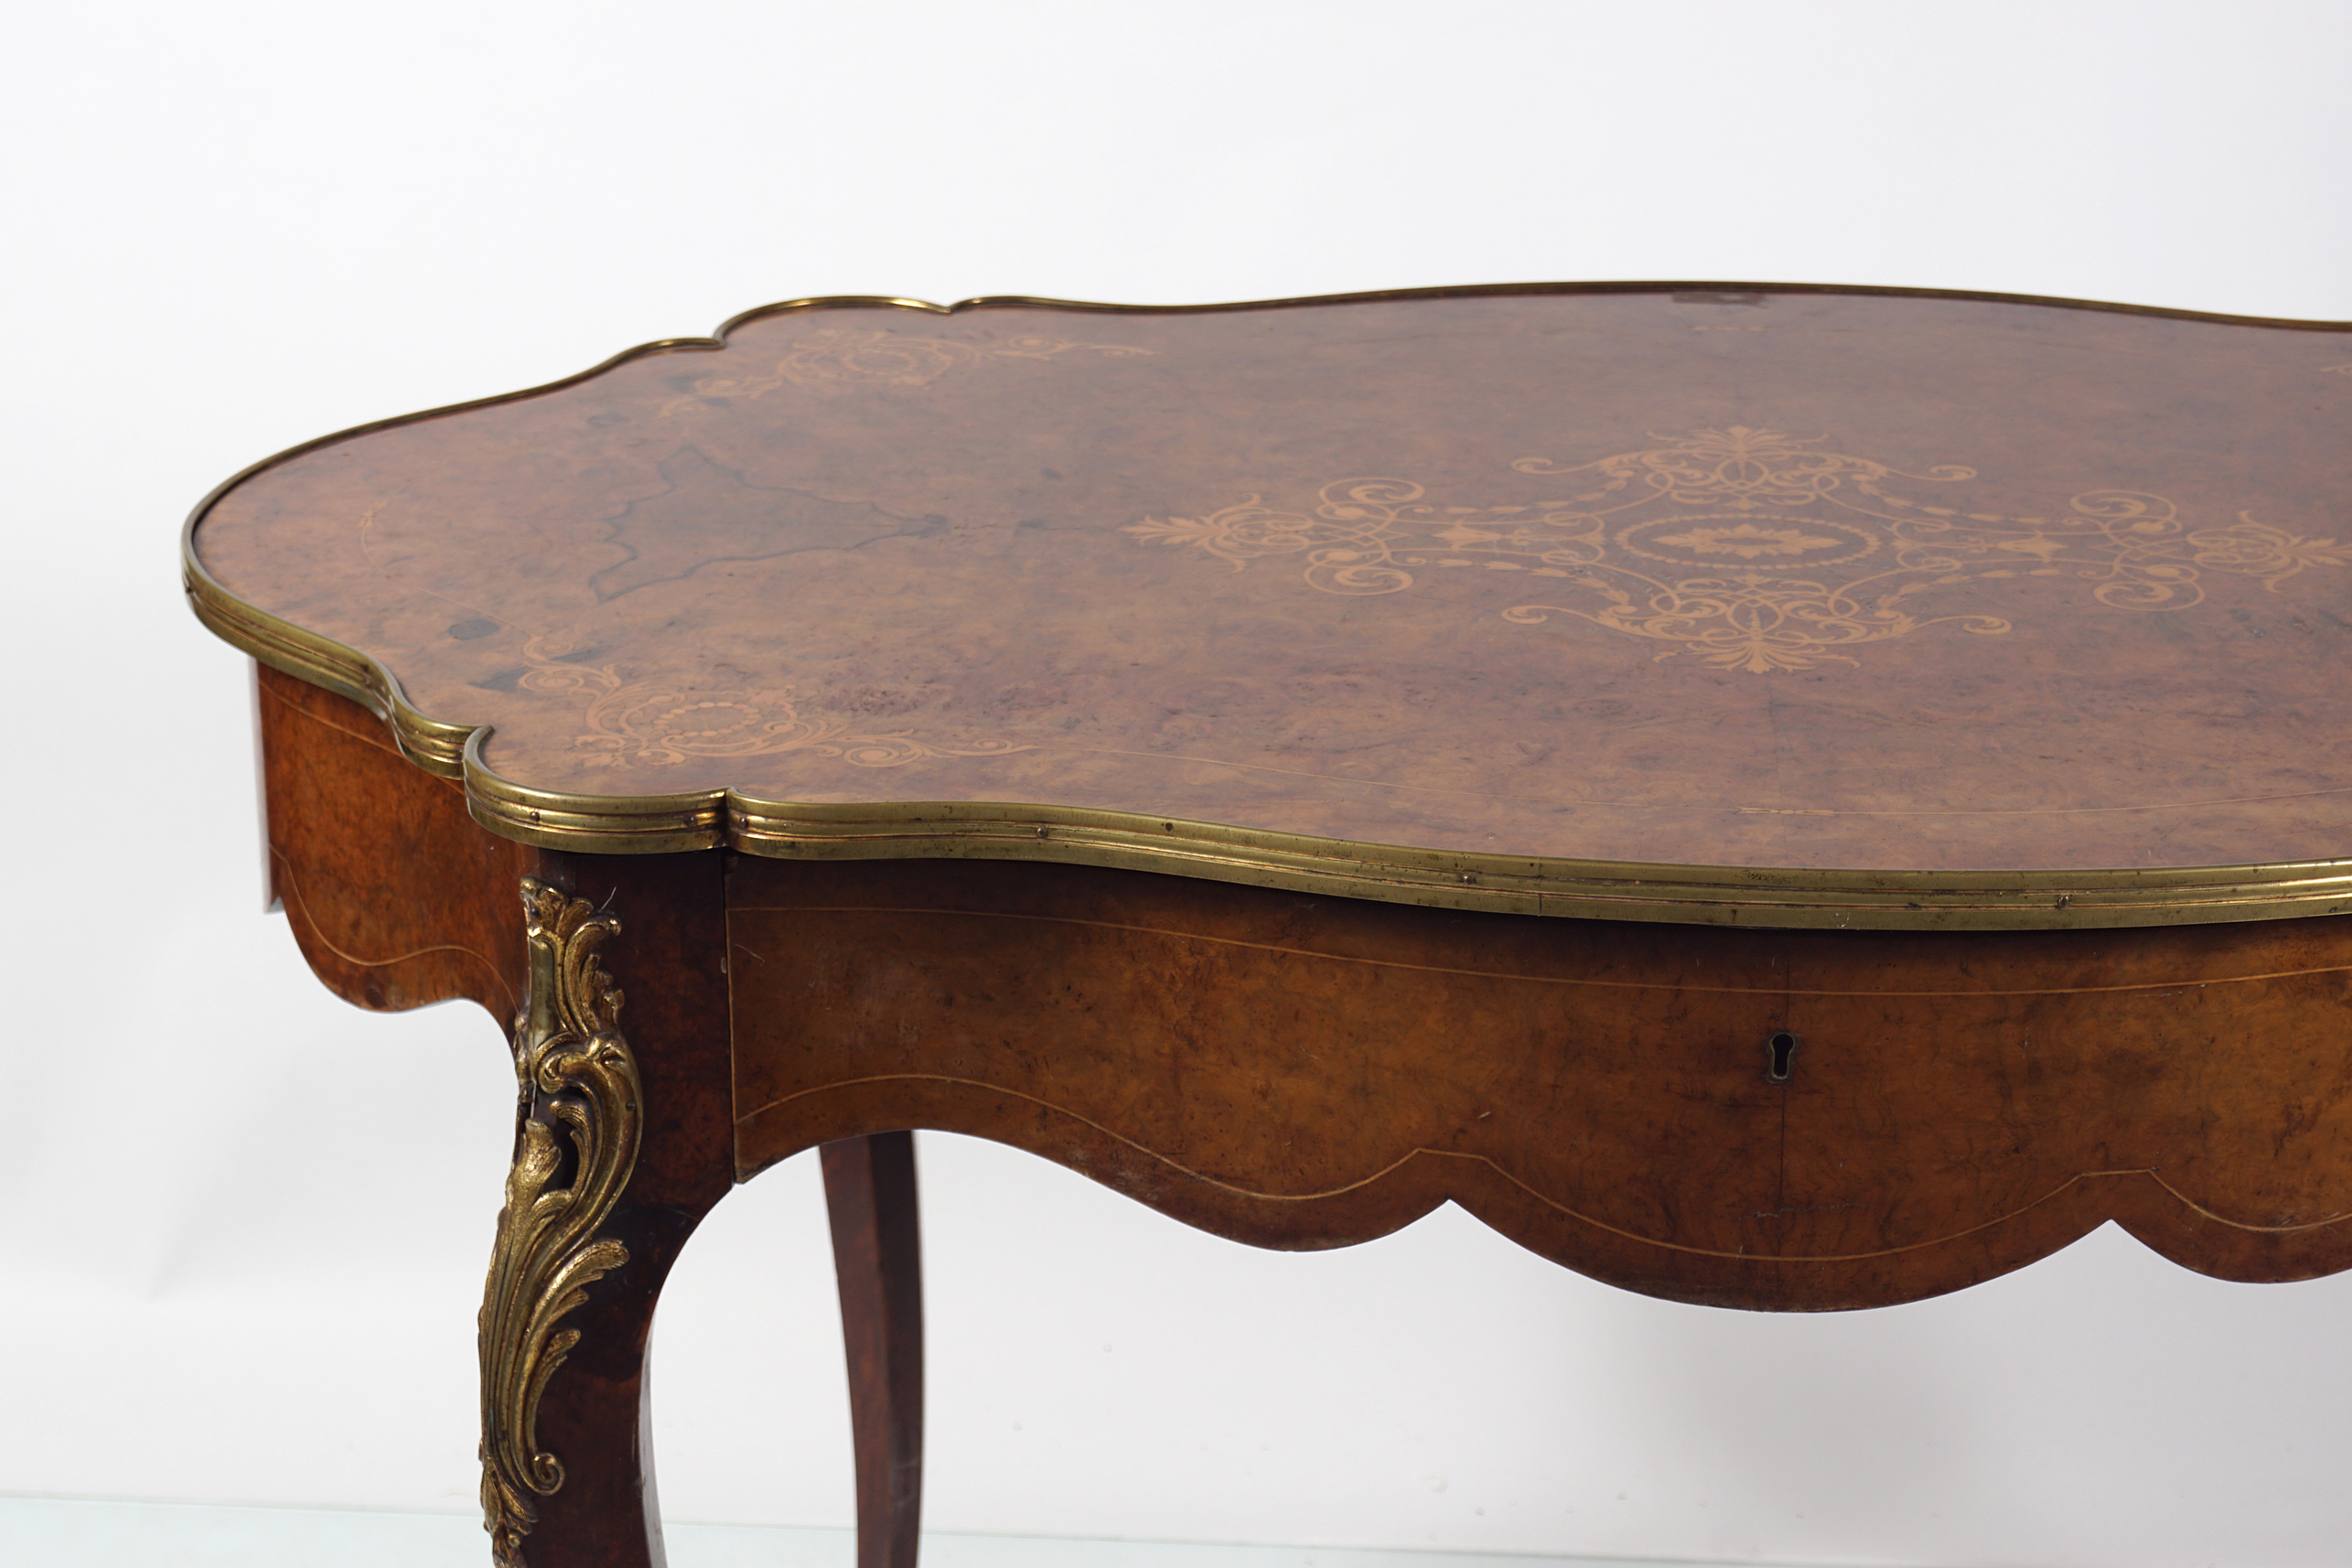 VICTORIAN INLAID WALNUT CENTRE TABLE - Image 2 of 5